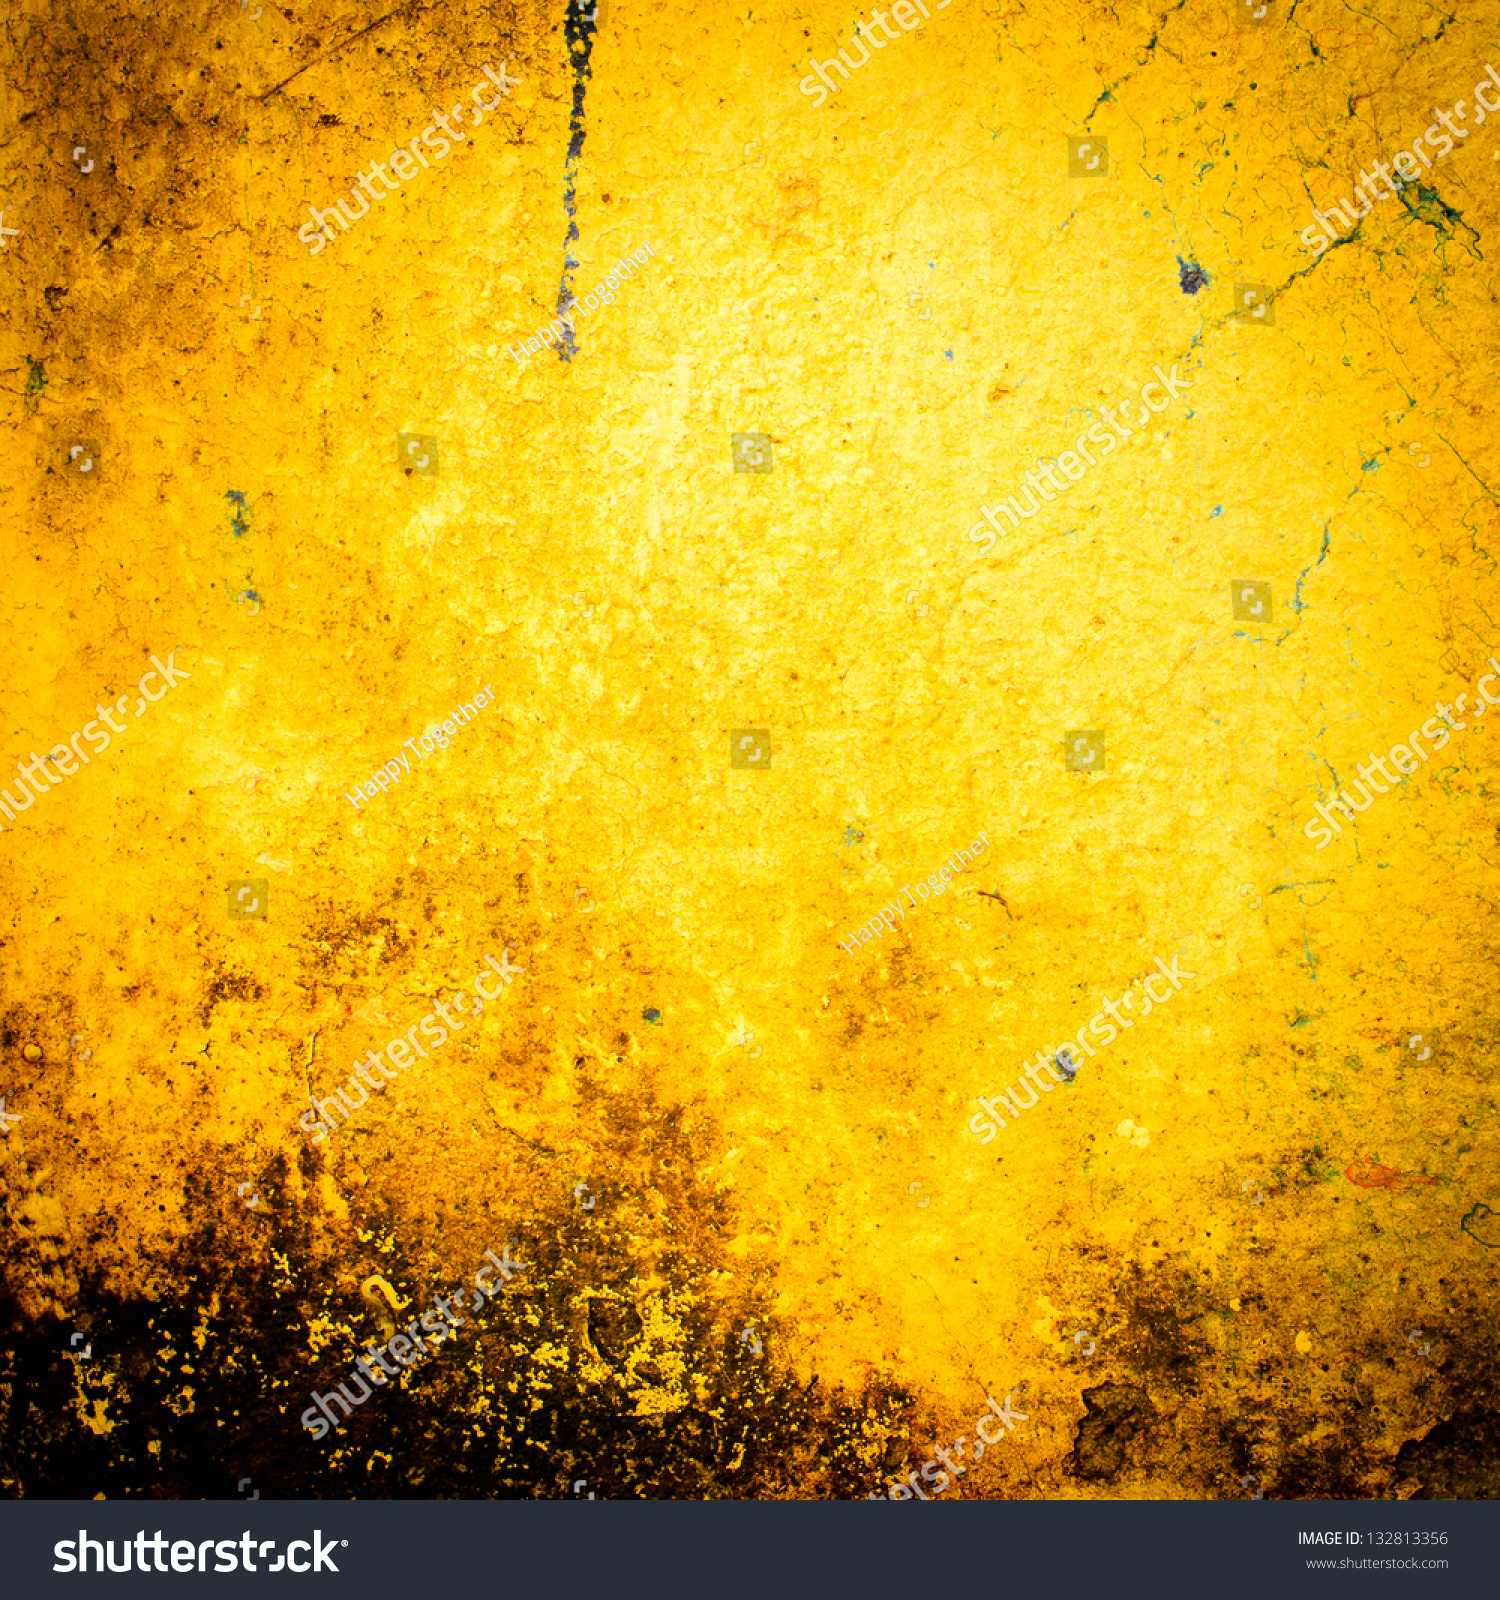 black and yellow grunge background pictures to pin on